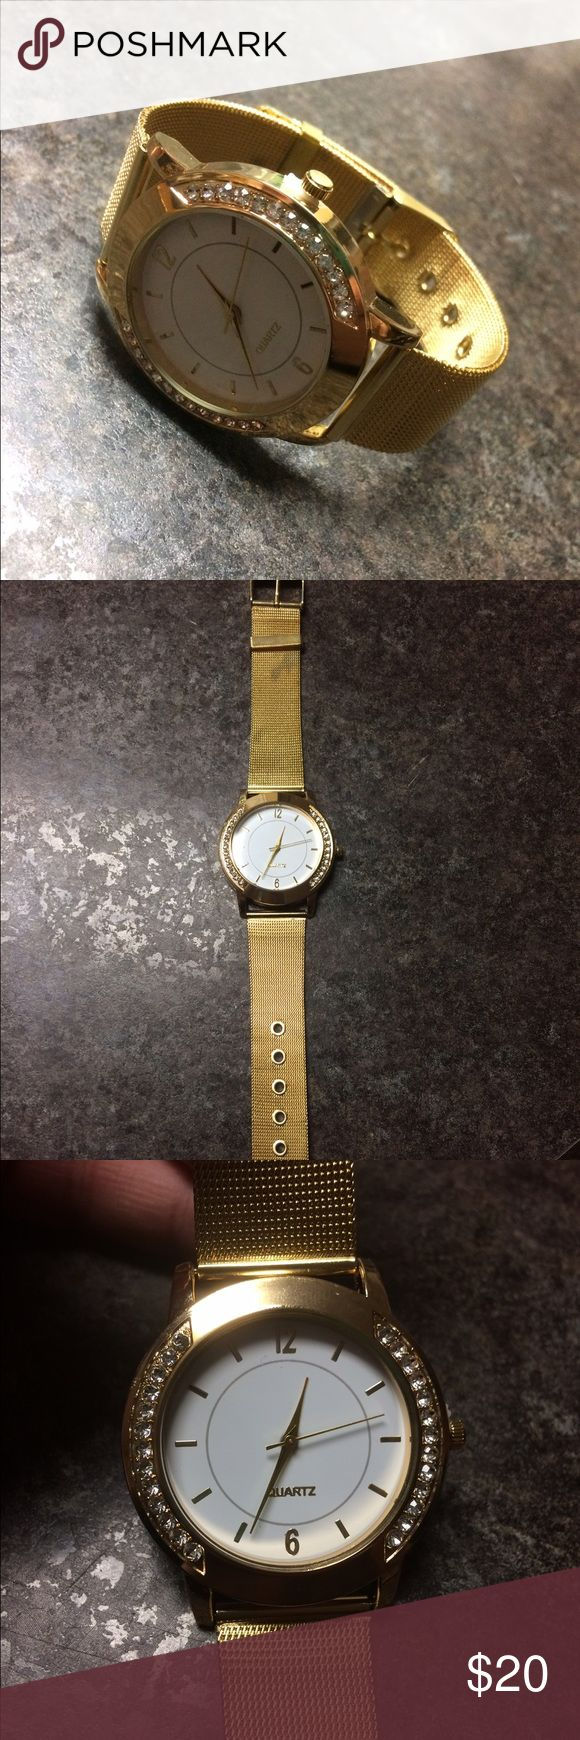 Women's gold watch Women's gold colored, large face watch Accessories Watches